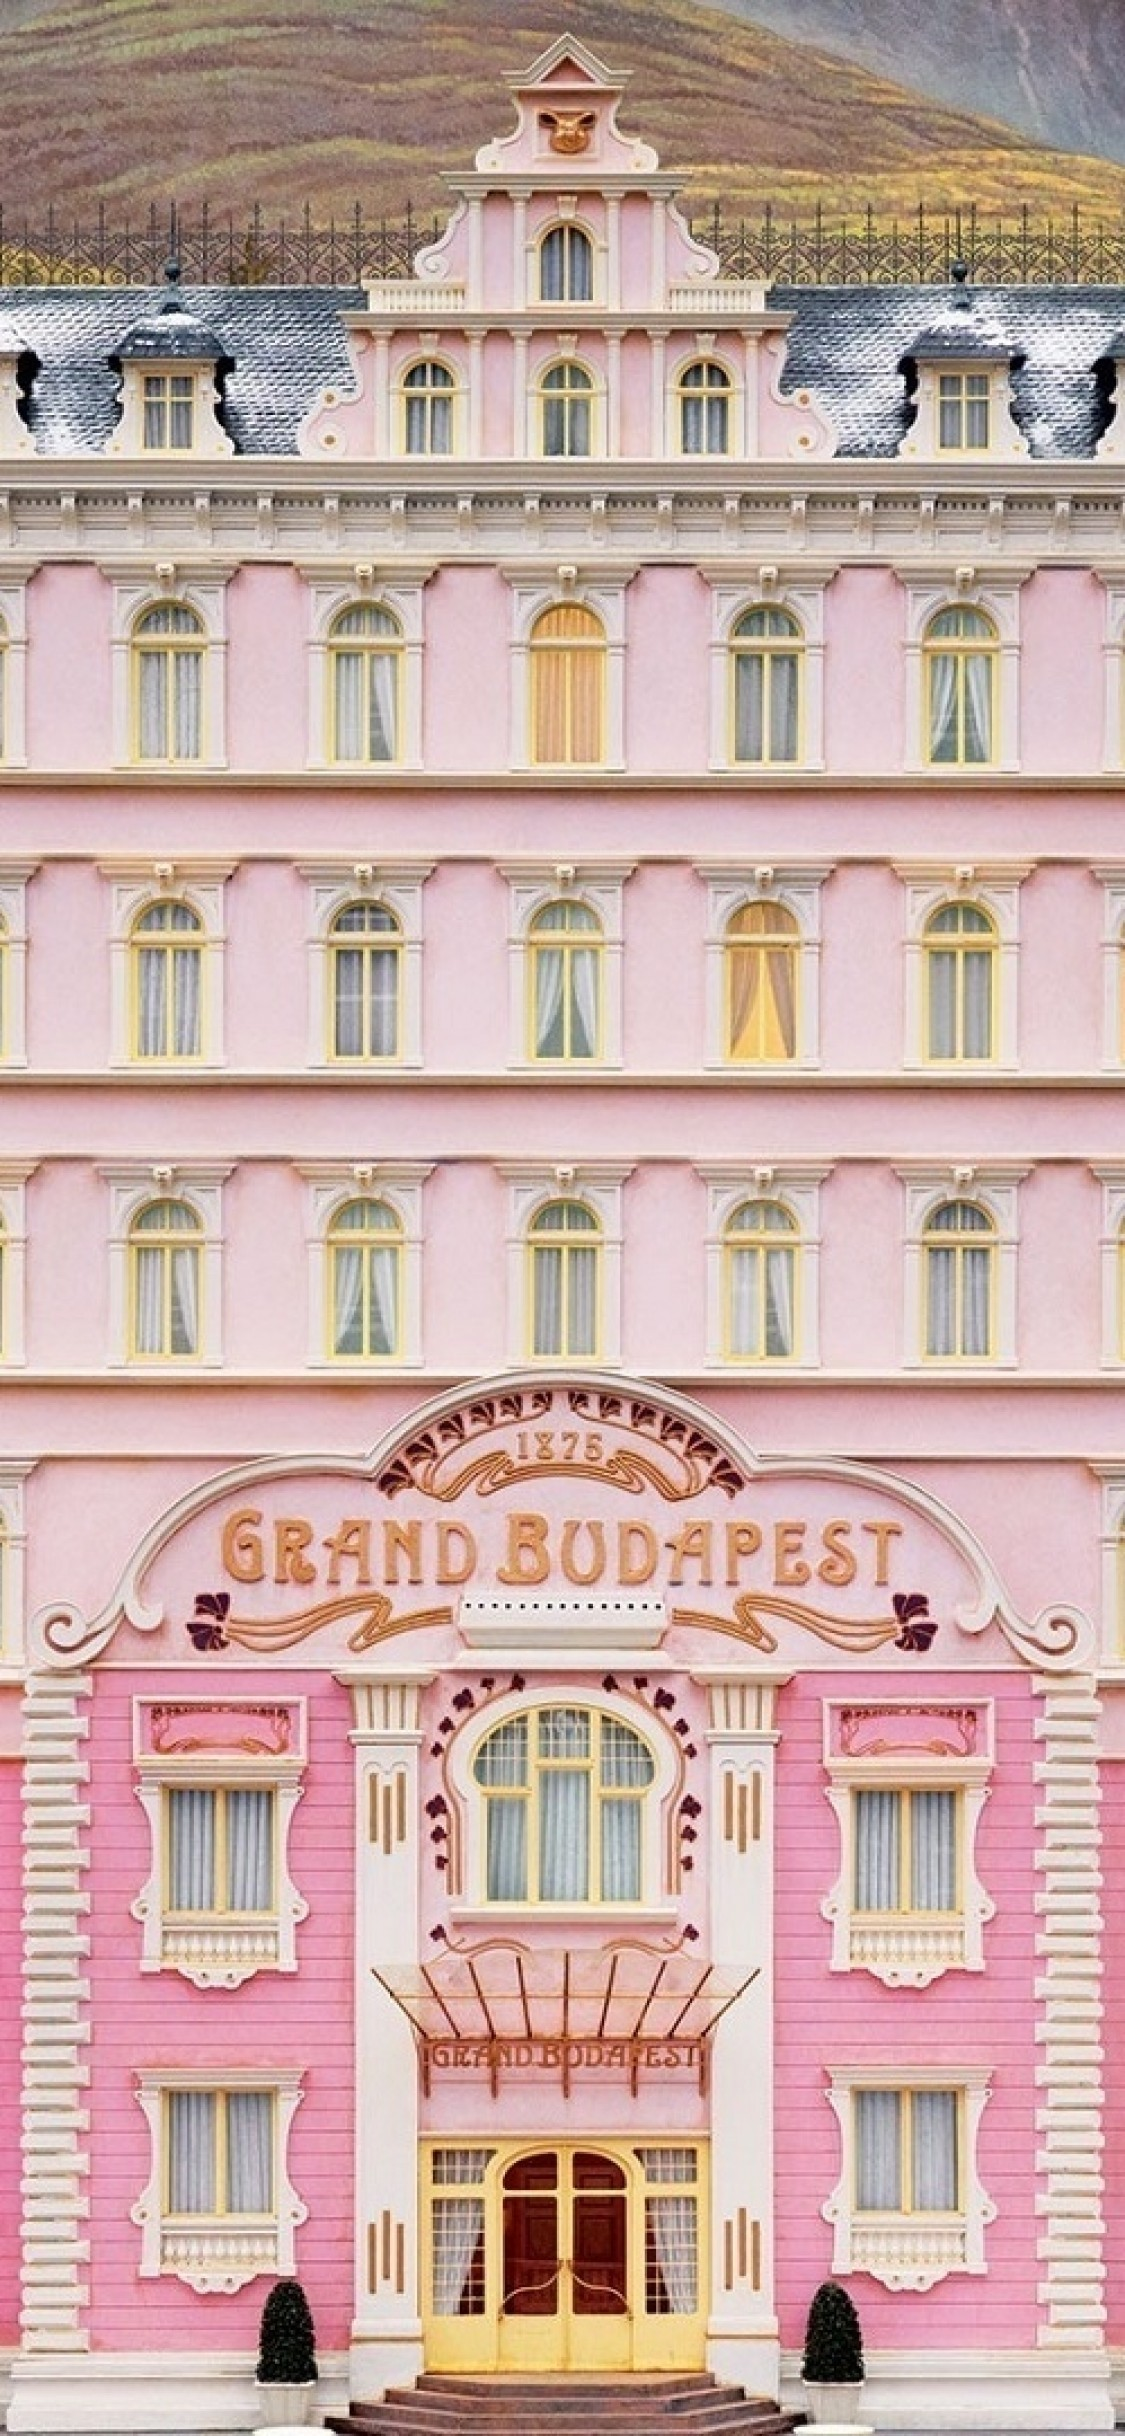 Download 1125x2436 The Grand Budapest Hotel Building Wallpapers 1125x2436